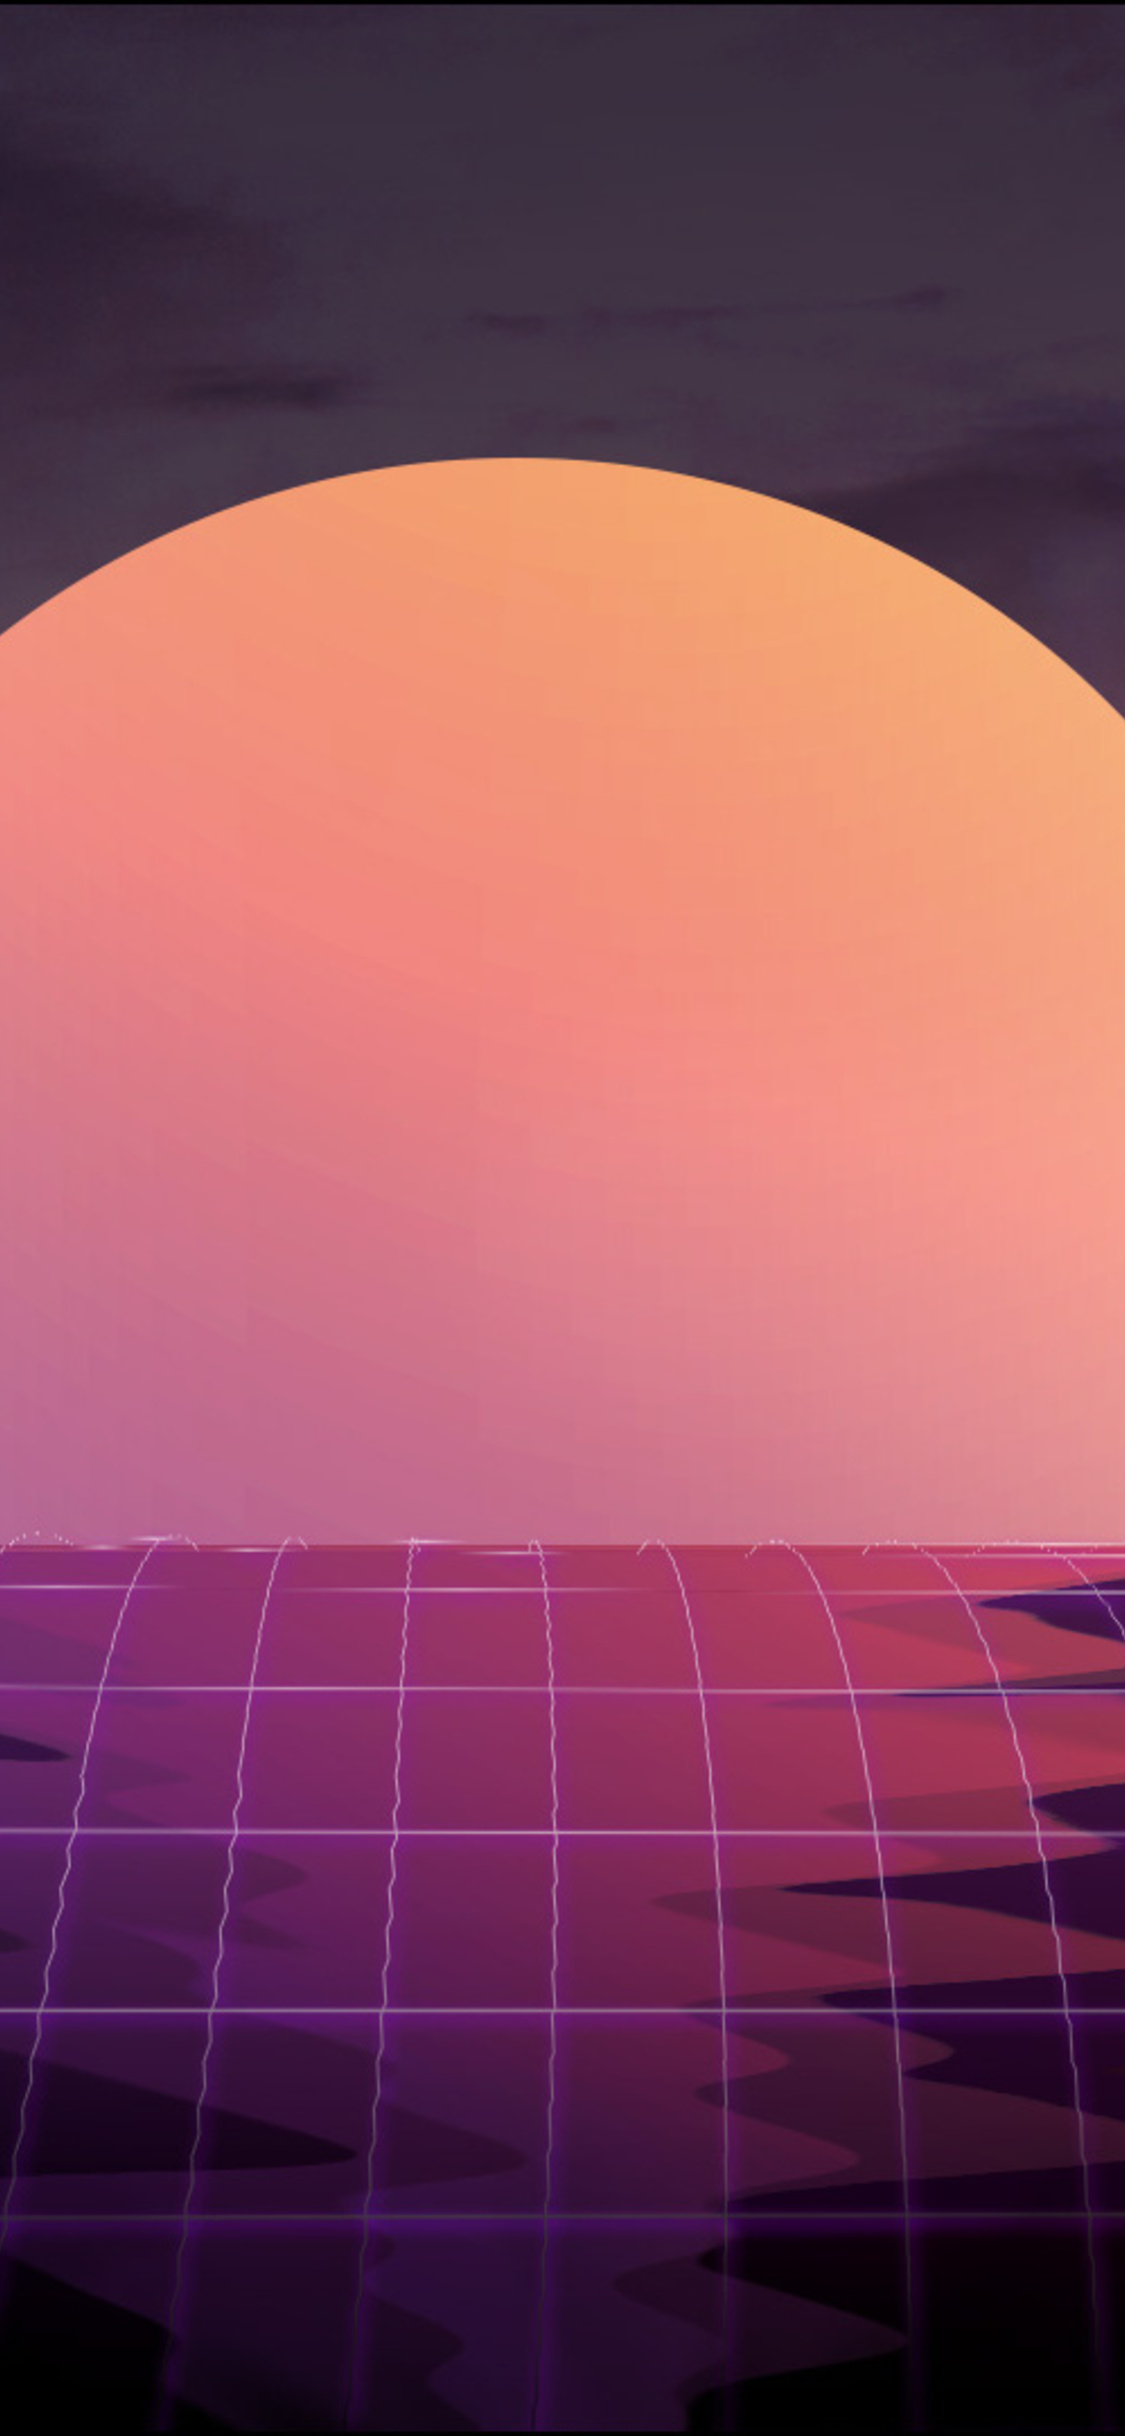 1125x2436 Vapor Wave Sunset 4k Iphone Xs Iphone 10 Iphone X Hd 4k